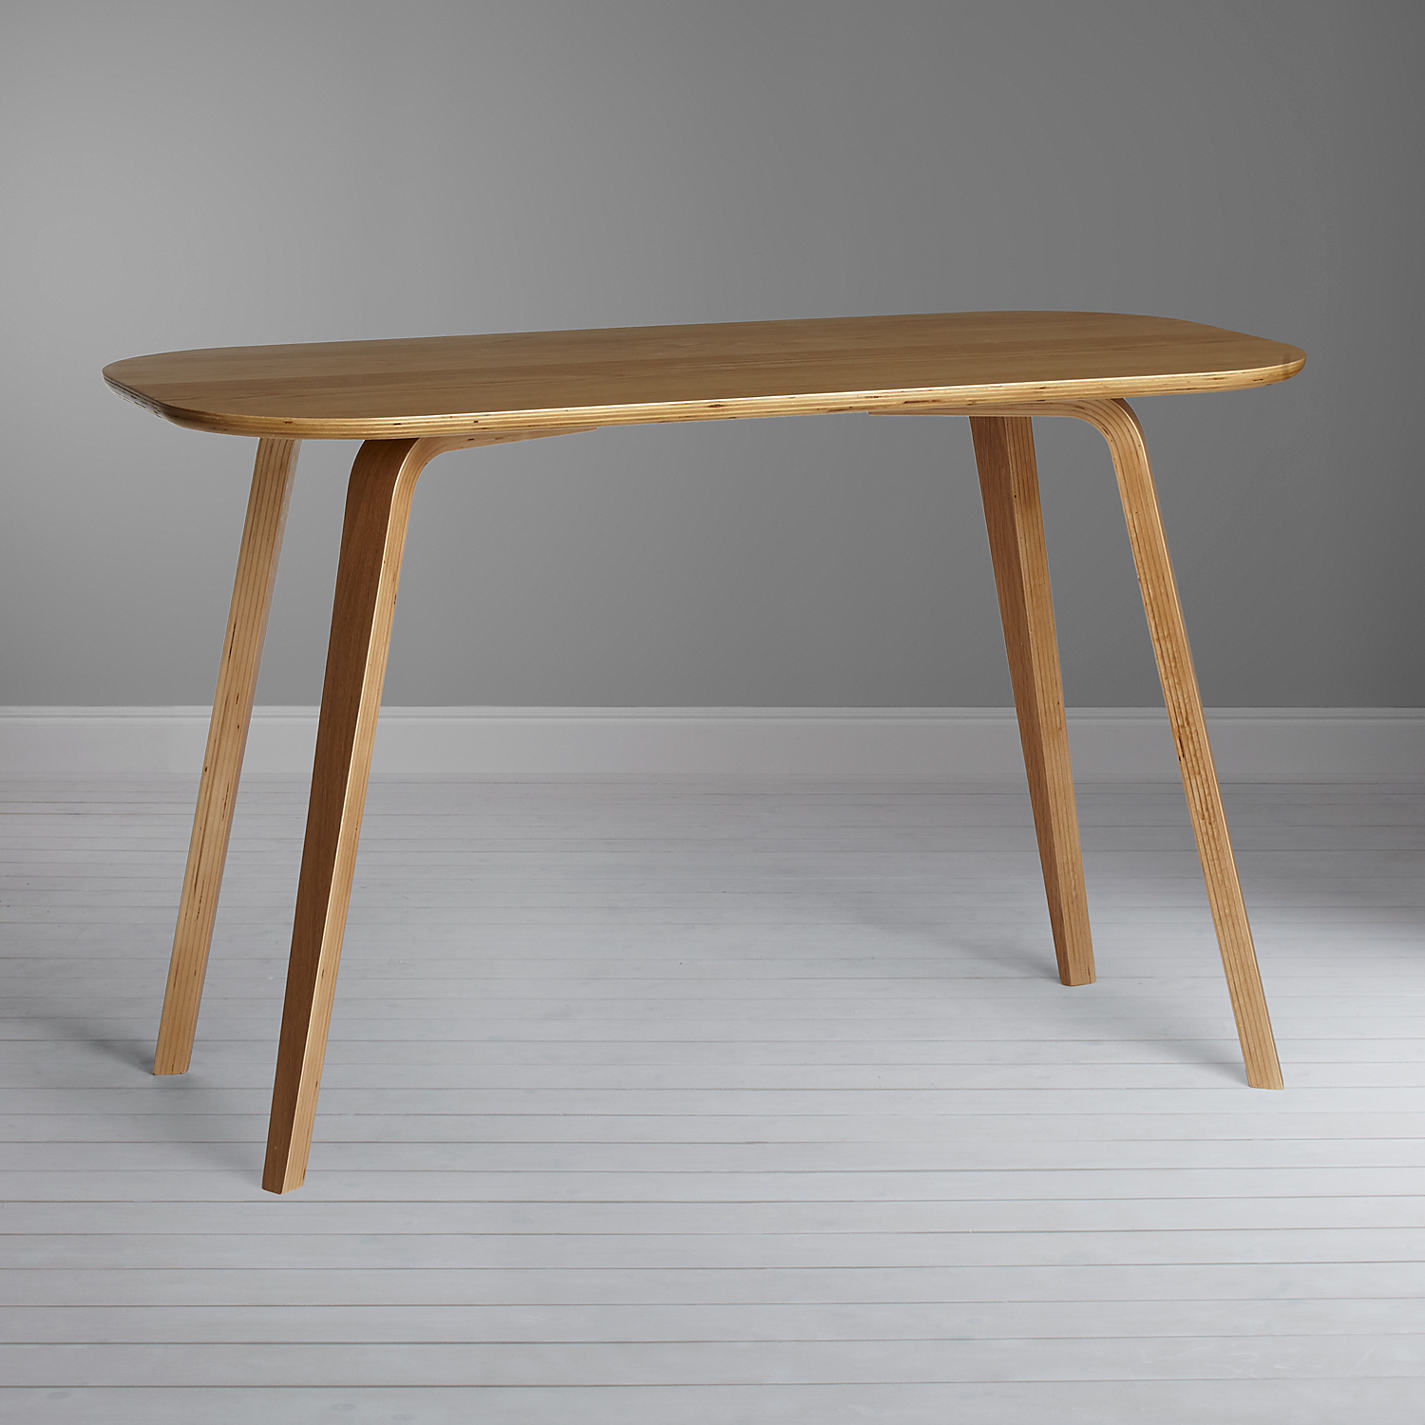 Buy house by john lewis anton desk john lewis buy house by john lewis anton desk online at johnlewis geotapseo Image collections